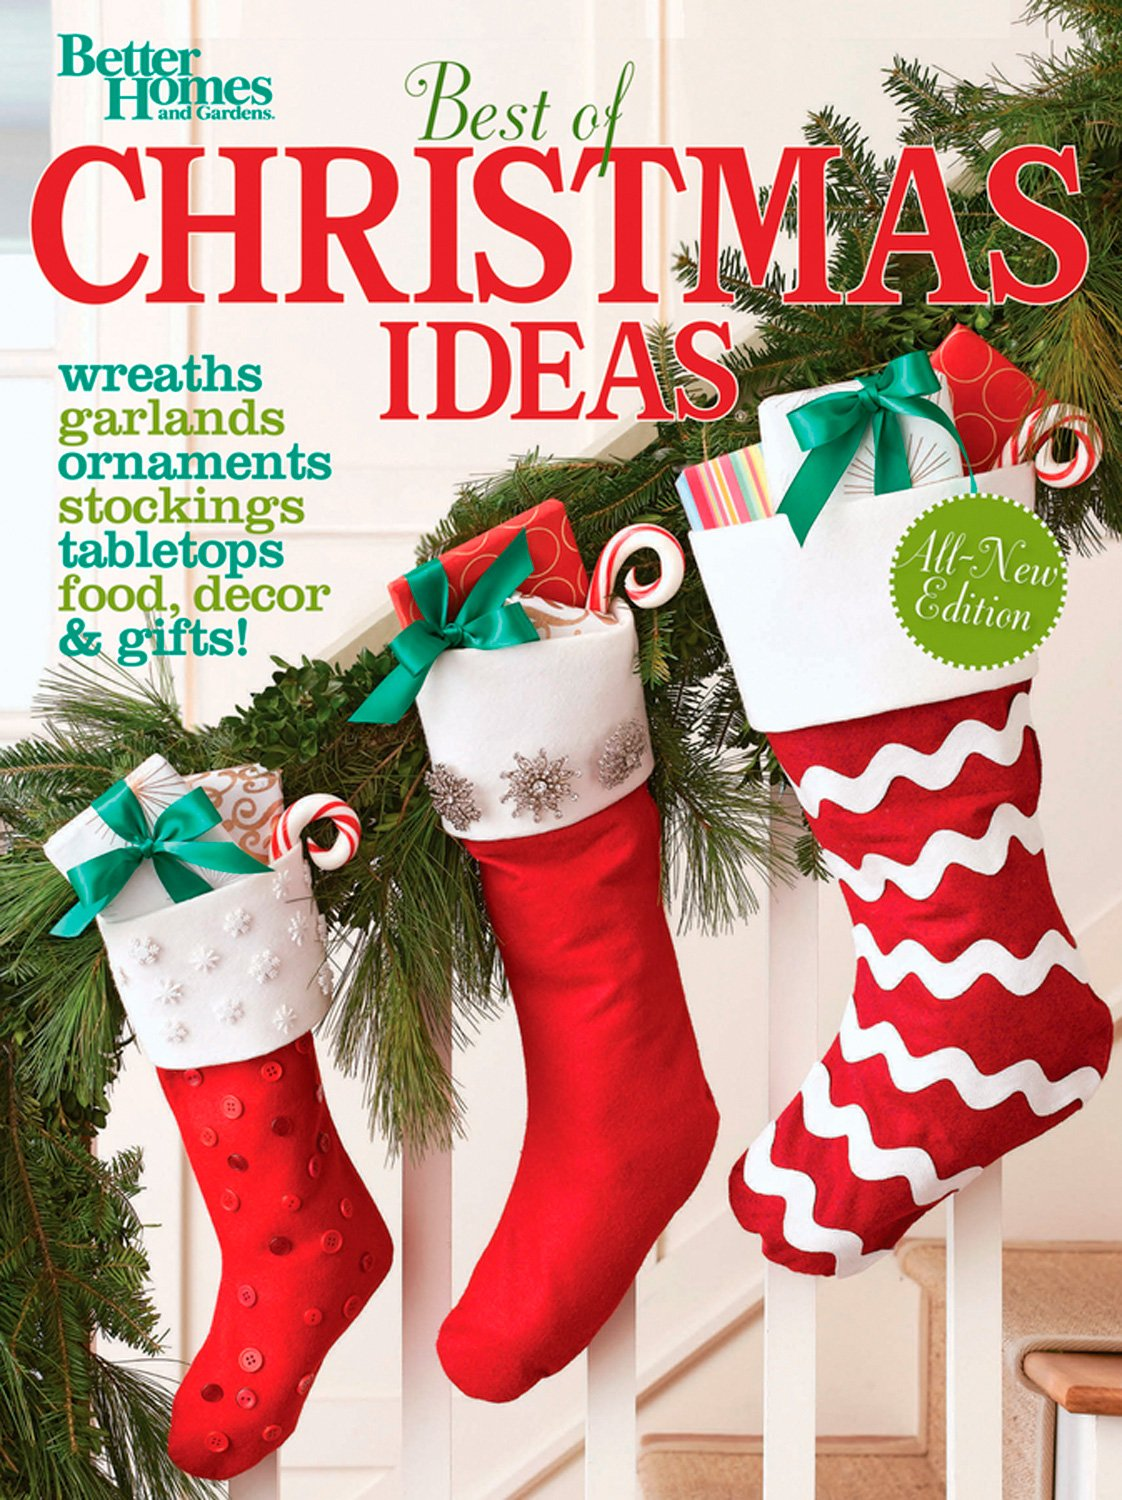 Superior Better Homes And Gardens Craft Ideas Part - 8: Better Homes And Gardens Craft Ideas For Christmas